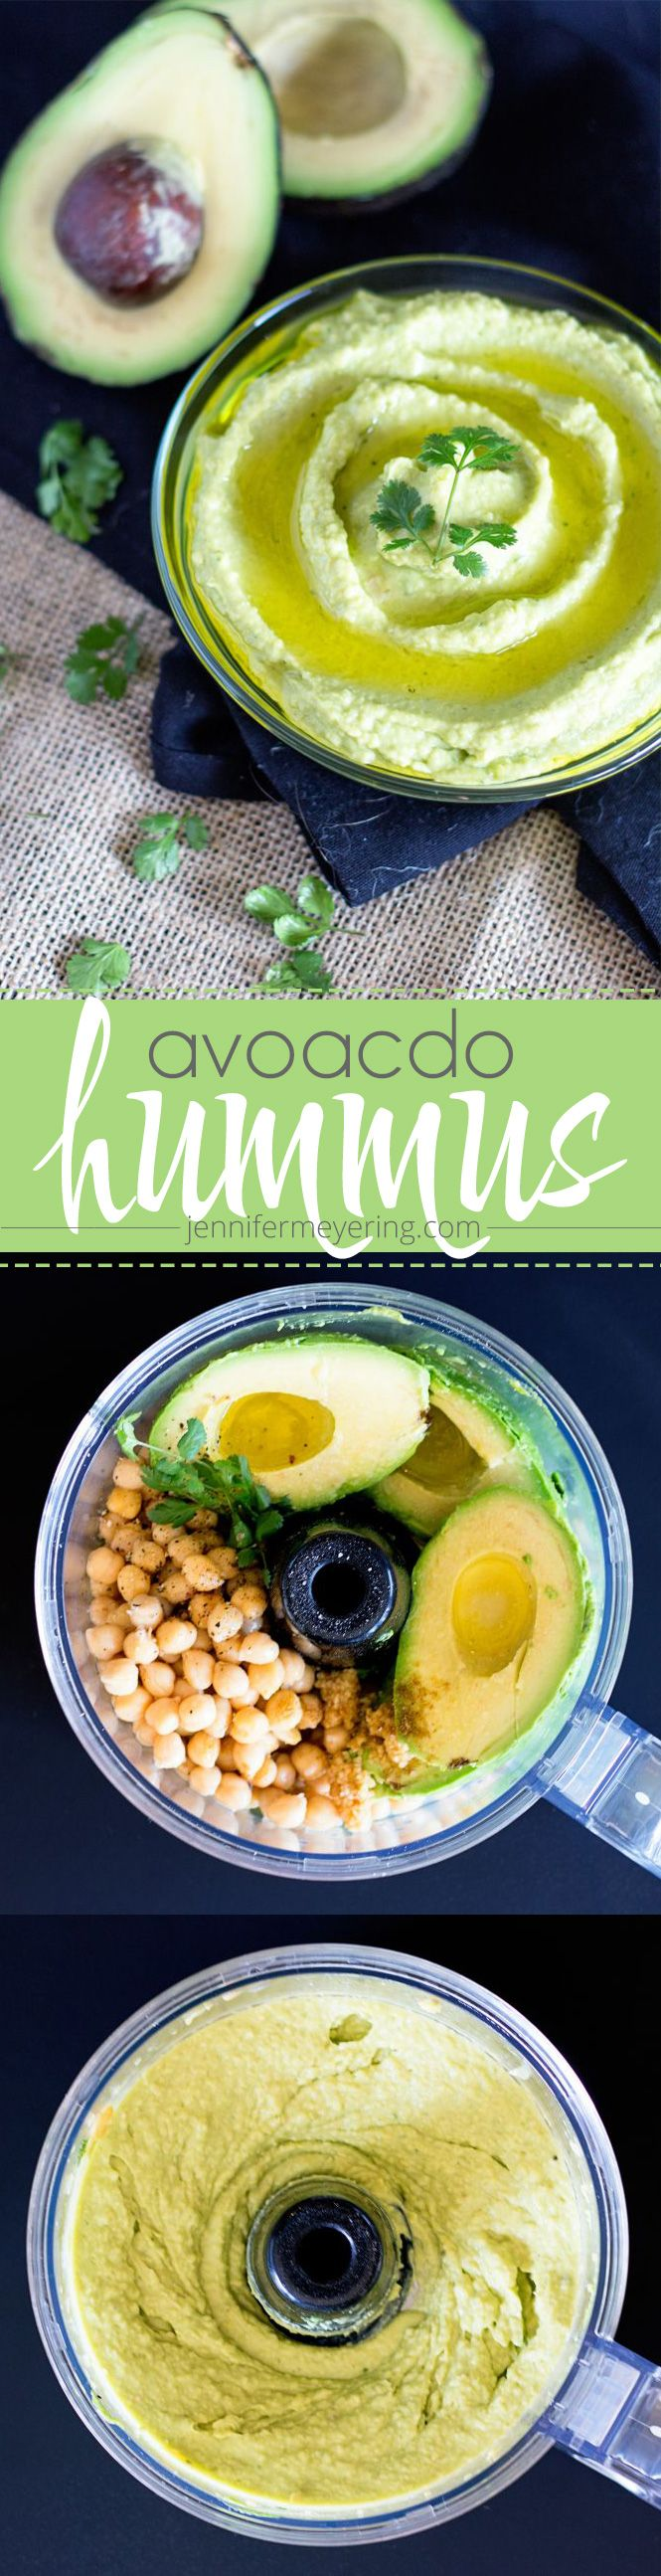 LIVER CLEANSING DIET - Avocado Hummus | LiverFlushing.com